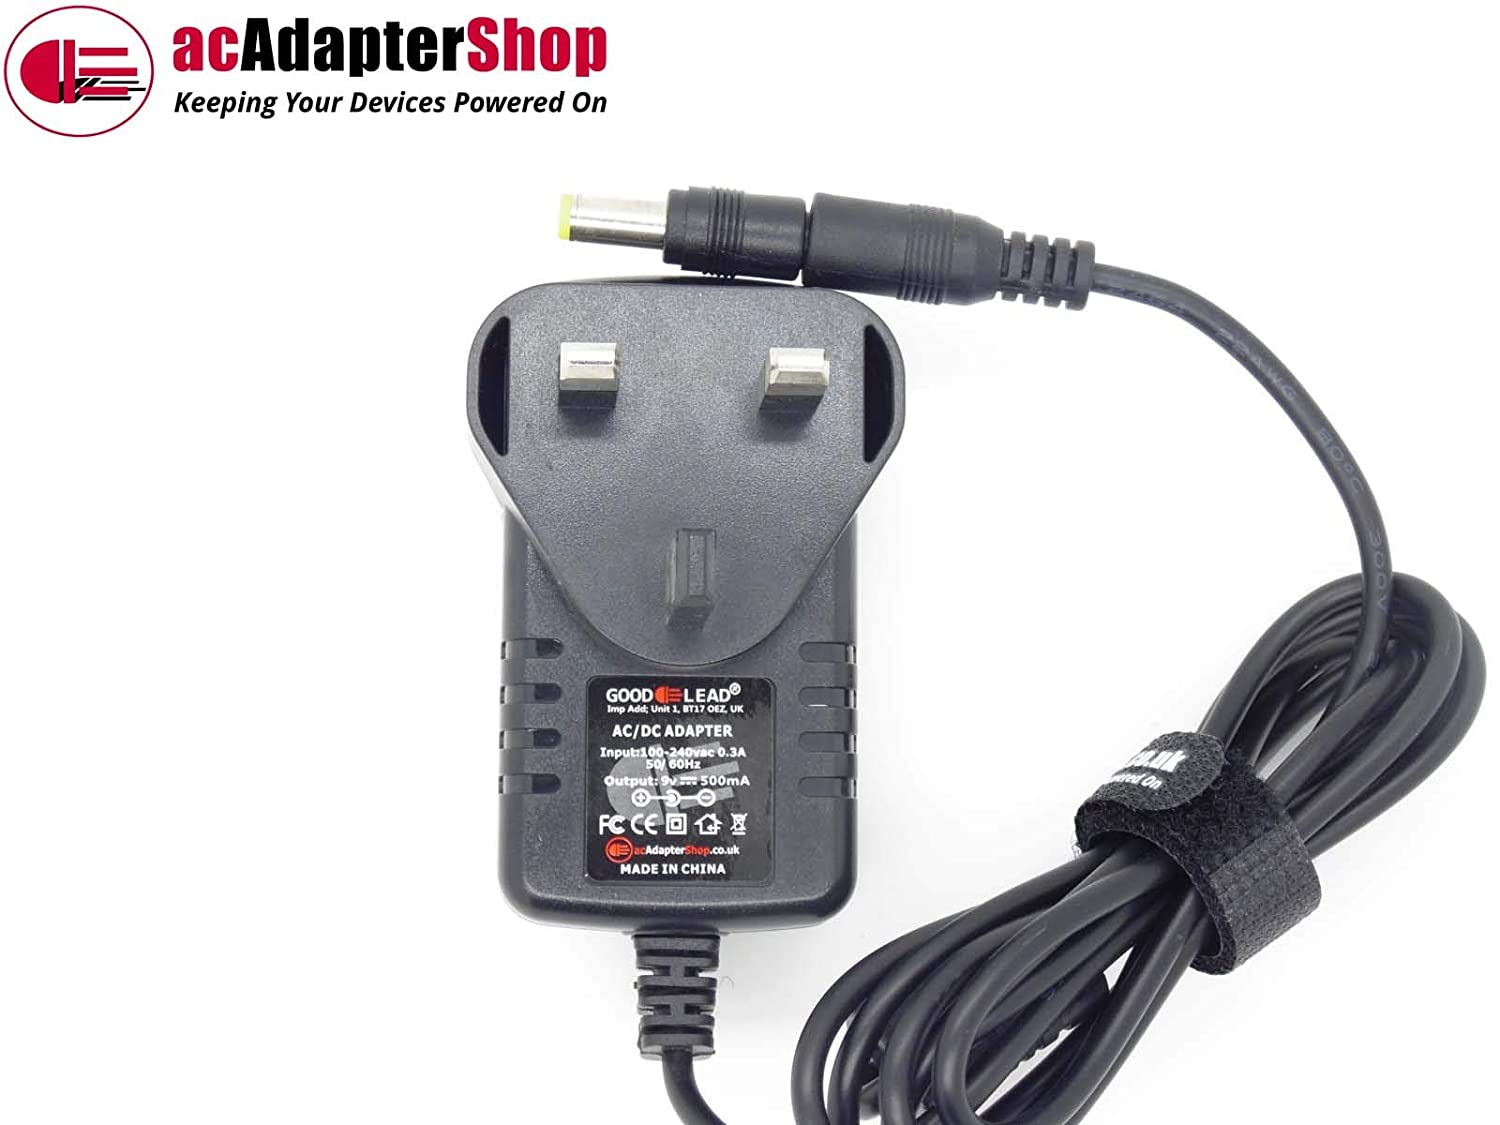 GOOD LEAD Replacement UK DC9V 9V 500mA Switching Adapter for Domyos VM Ergo Exercise Bike